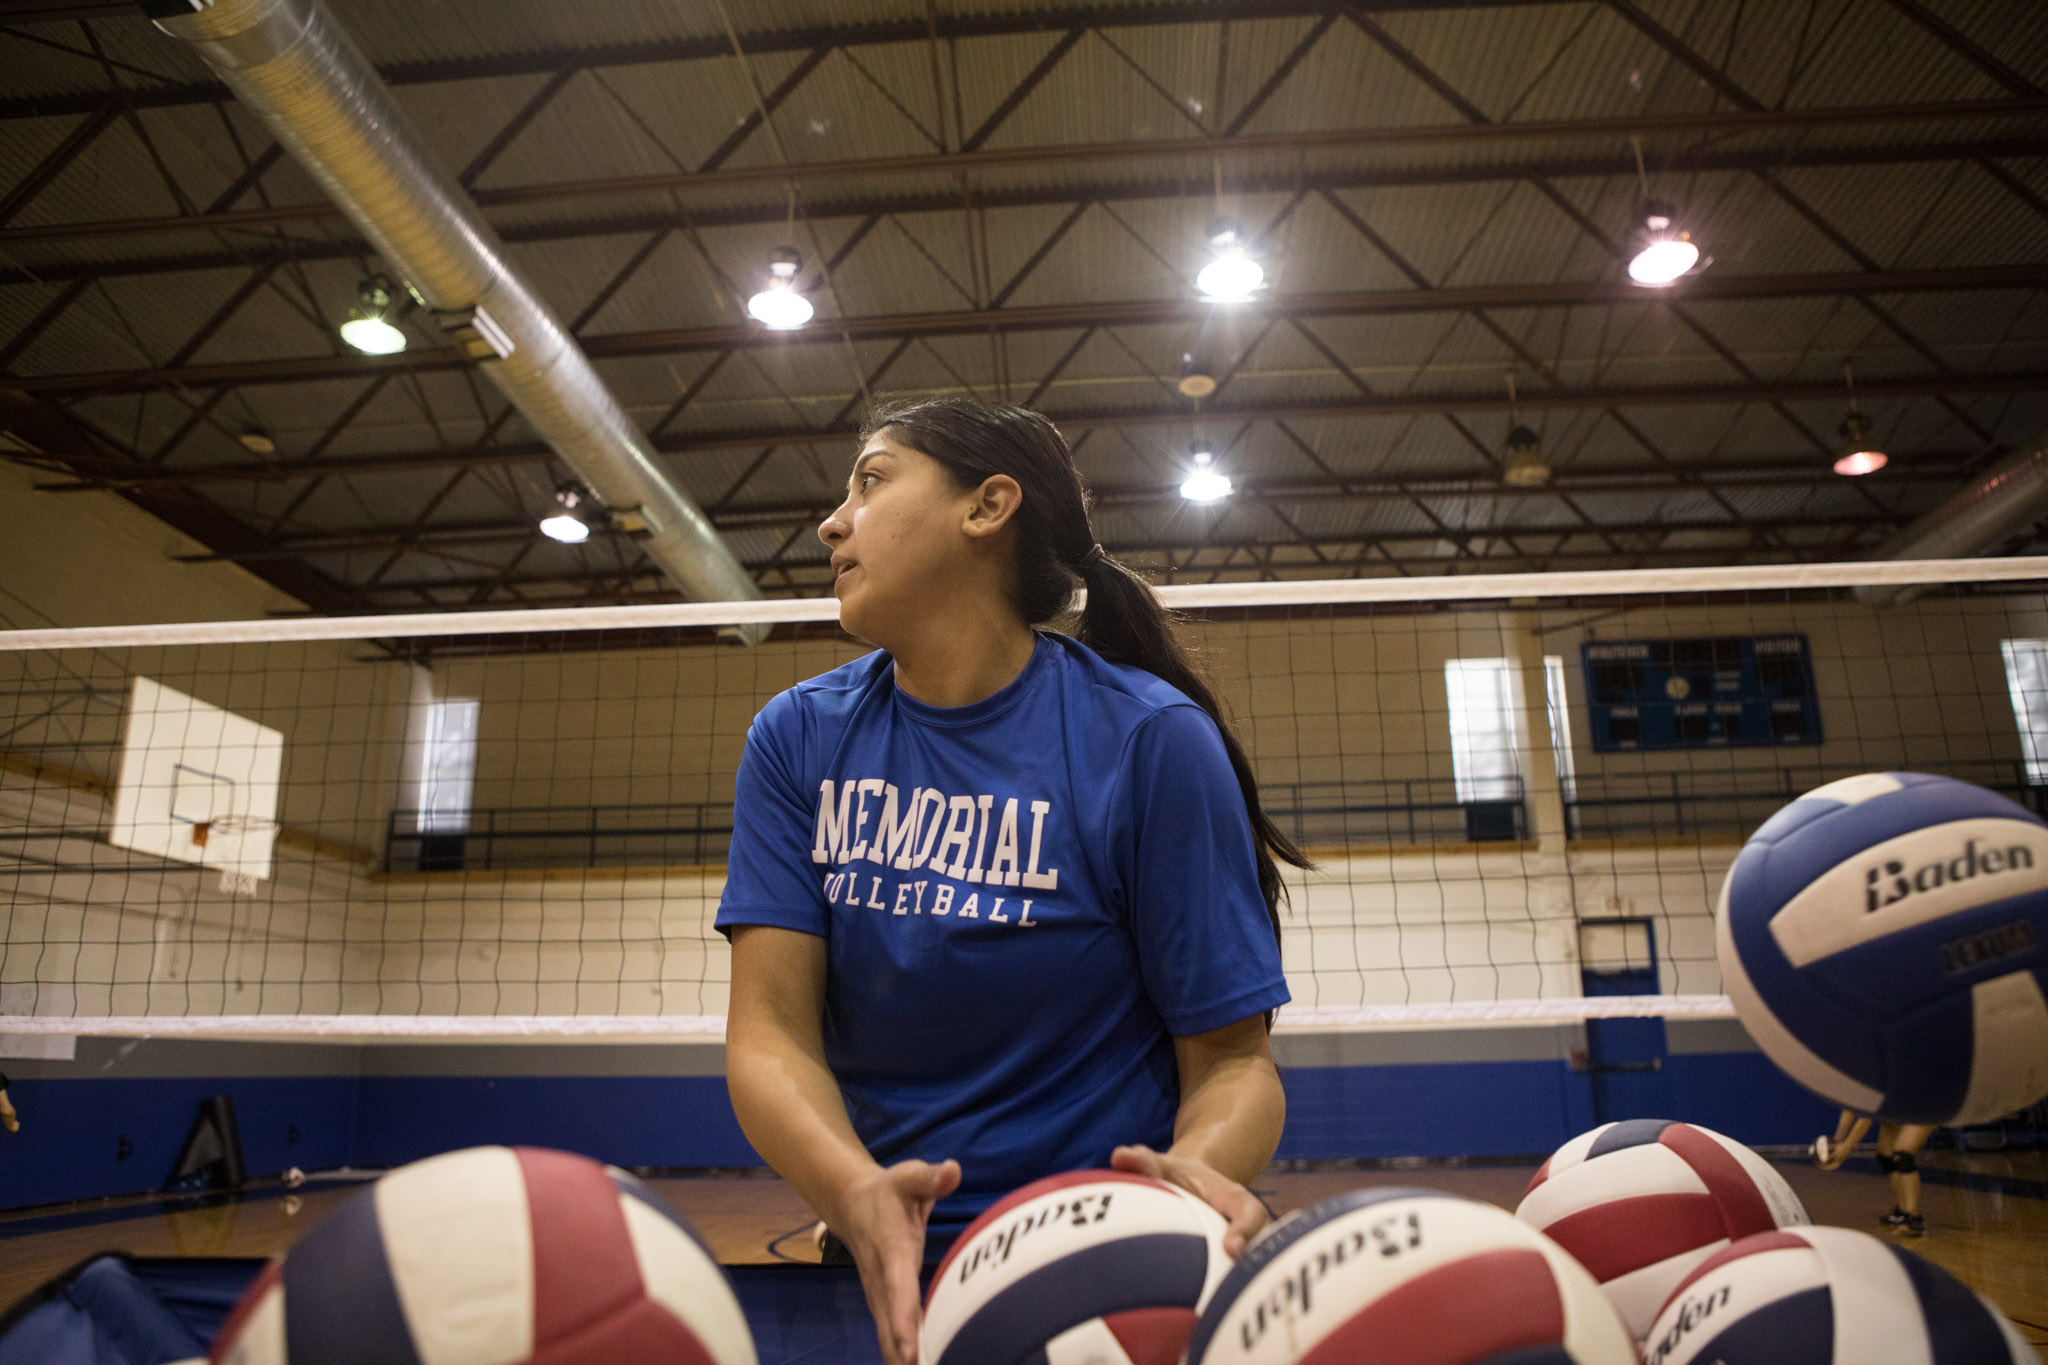 Memorial High School Volleyball Coach Samantha Mendez prepares to throw the ball during practice.